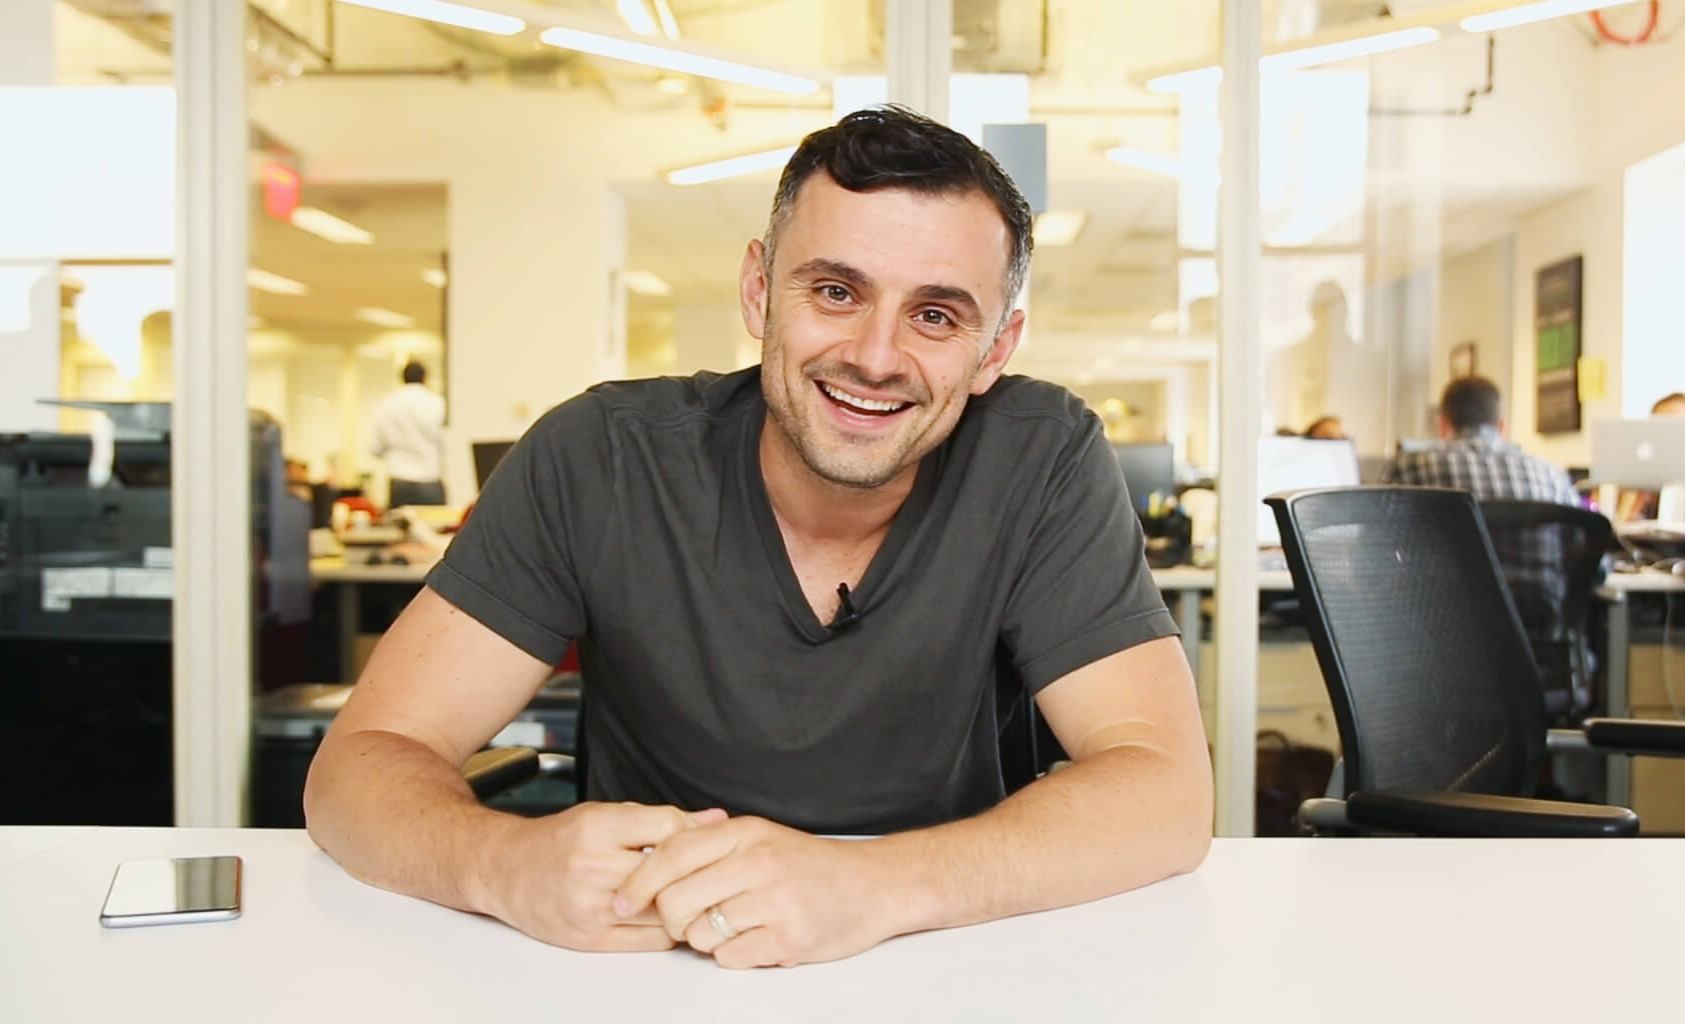 Gary Vaynerchuk at VaynerMedia, leaning his hands on the table